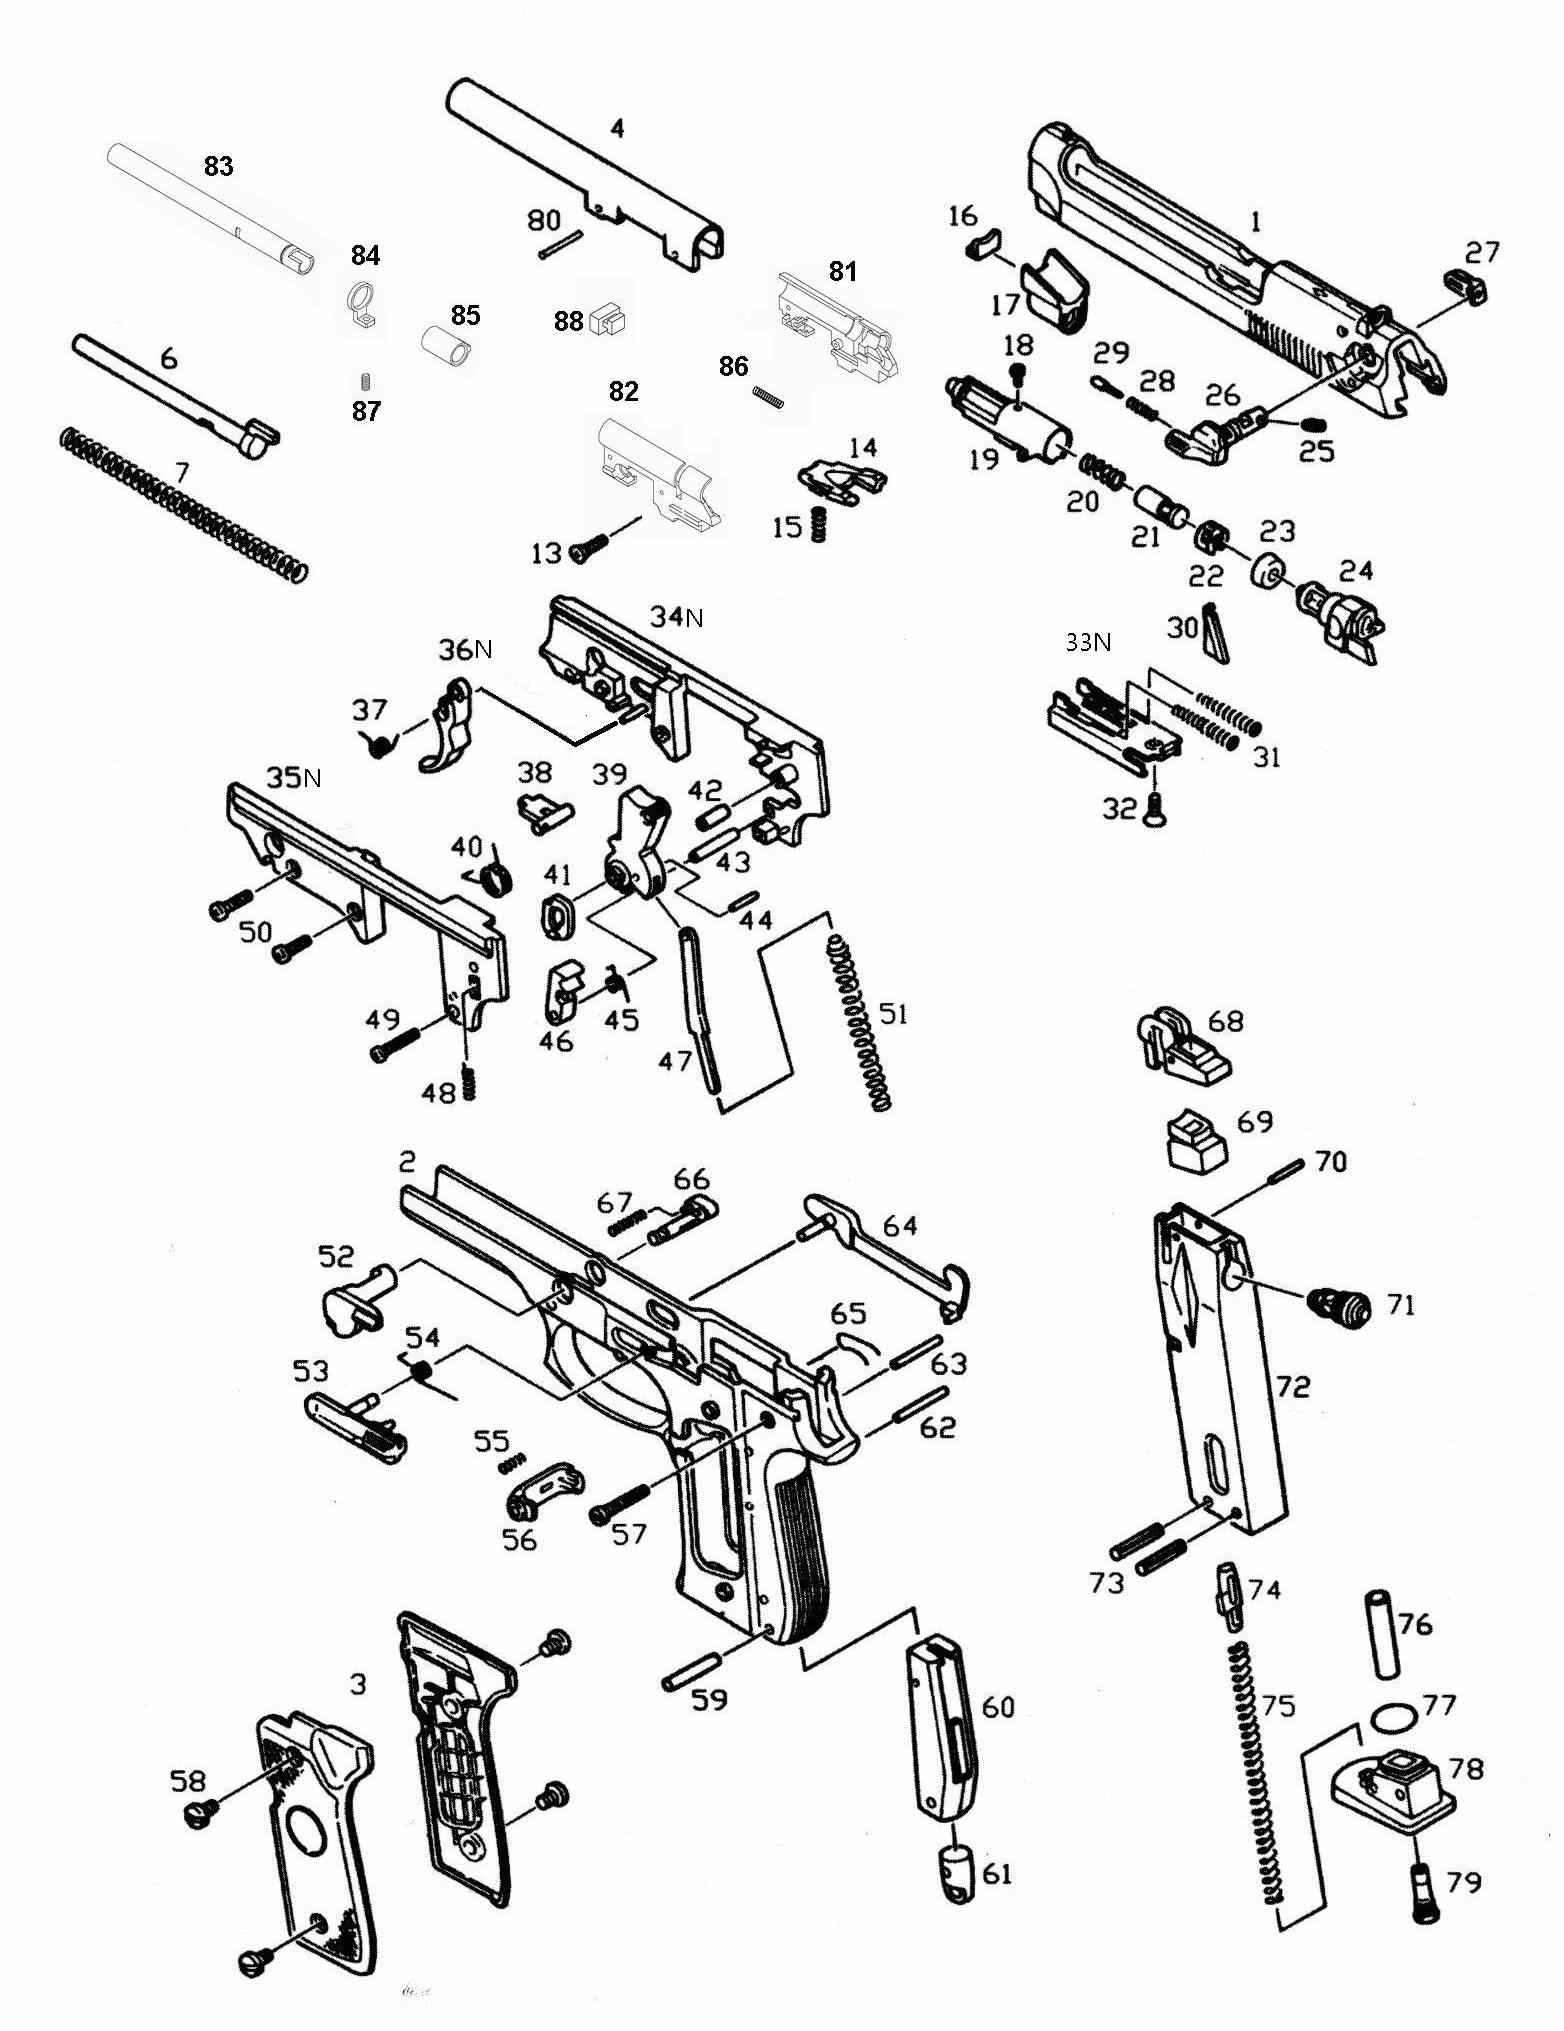 Exploded Diagram Kjw M9  U2013 Ksc Part  U2013 Original  Worldwide